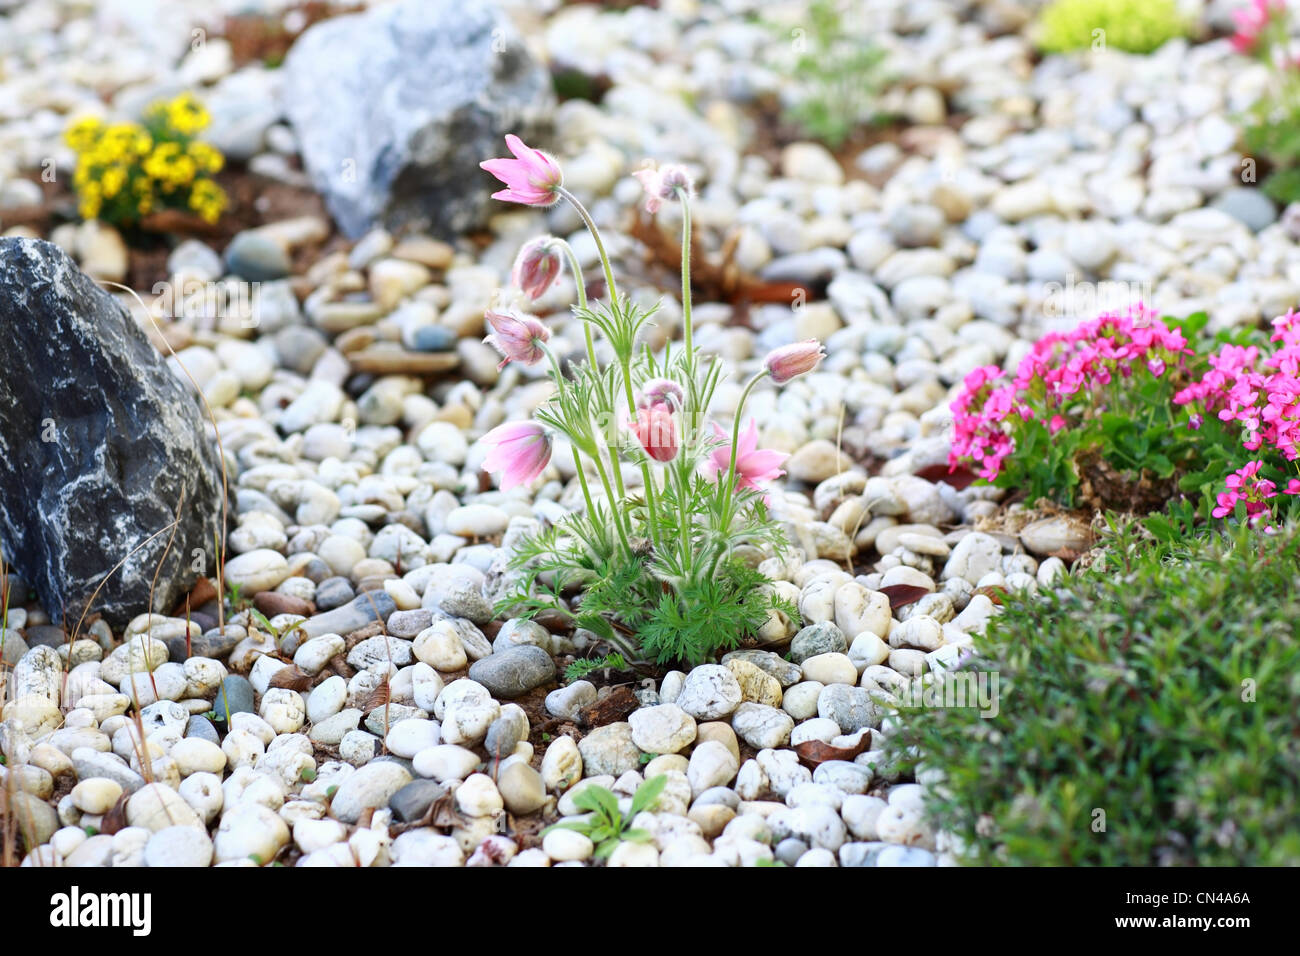 Merveilleux Small Rock Garden Constructed With Rocks And Alpine Plants   Stock Image